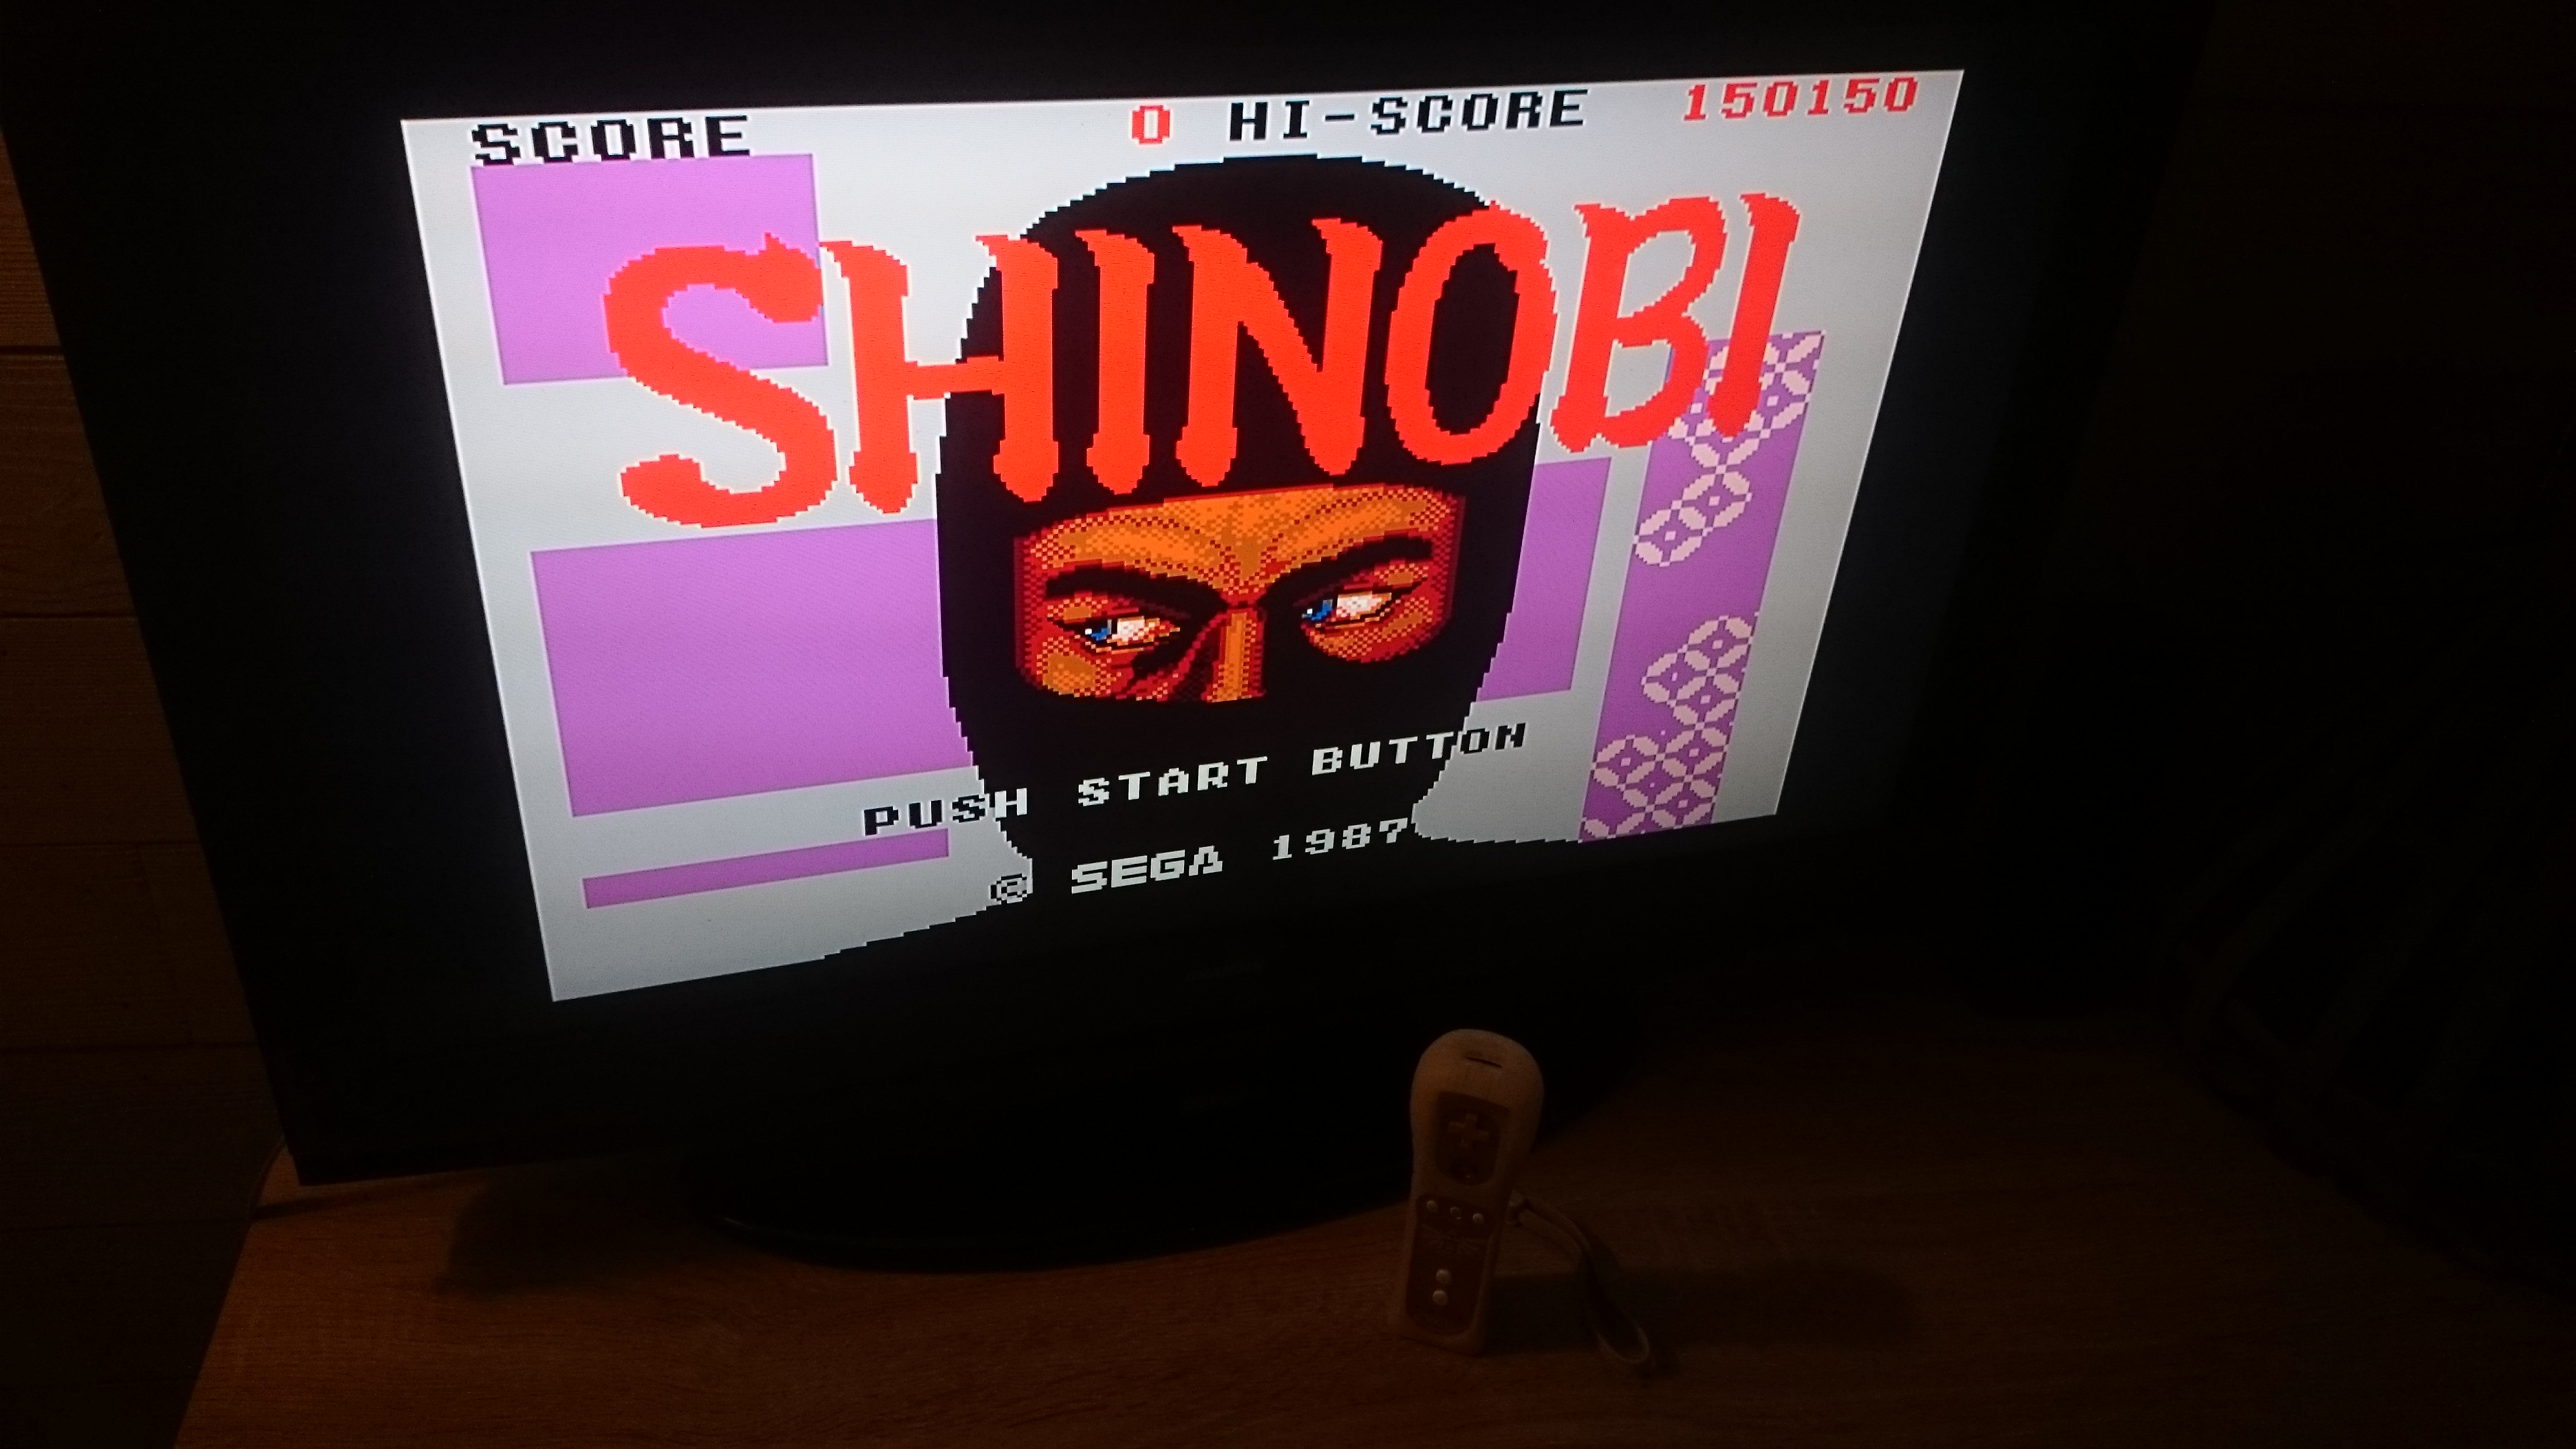 Shinobi 150,150 points